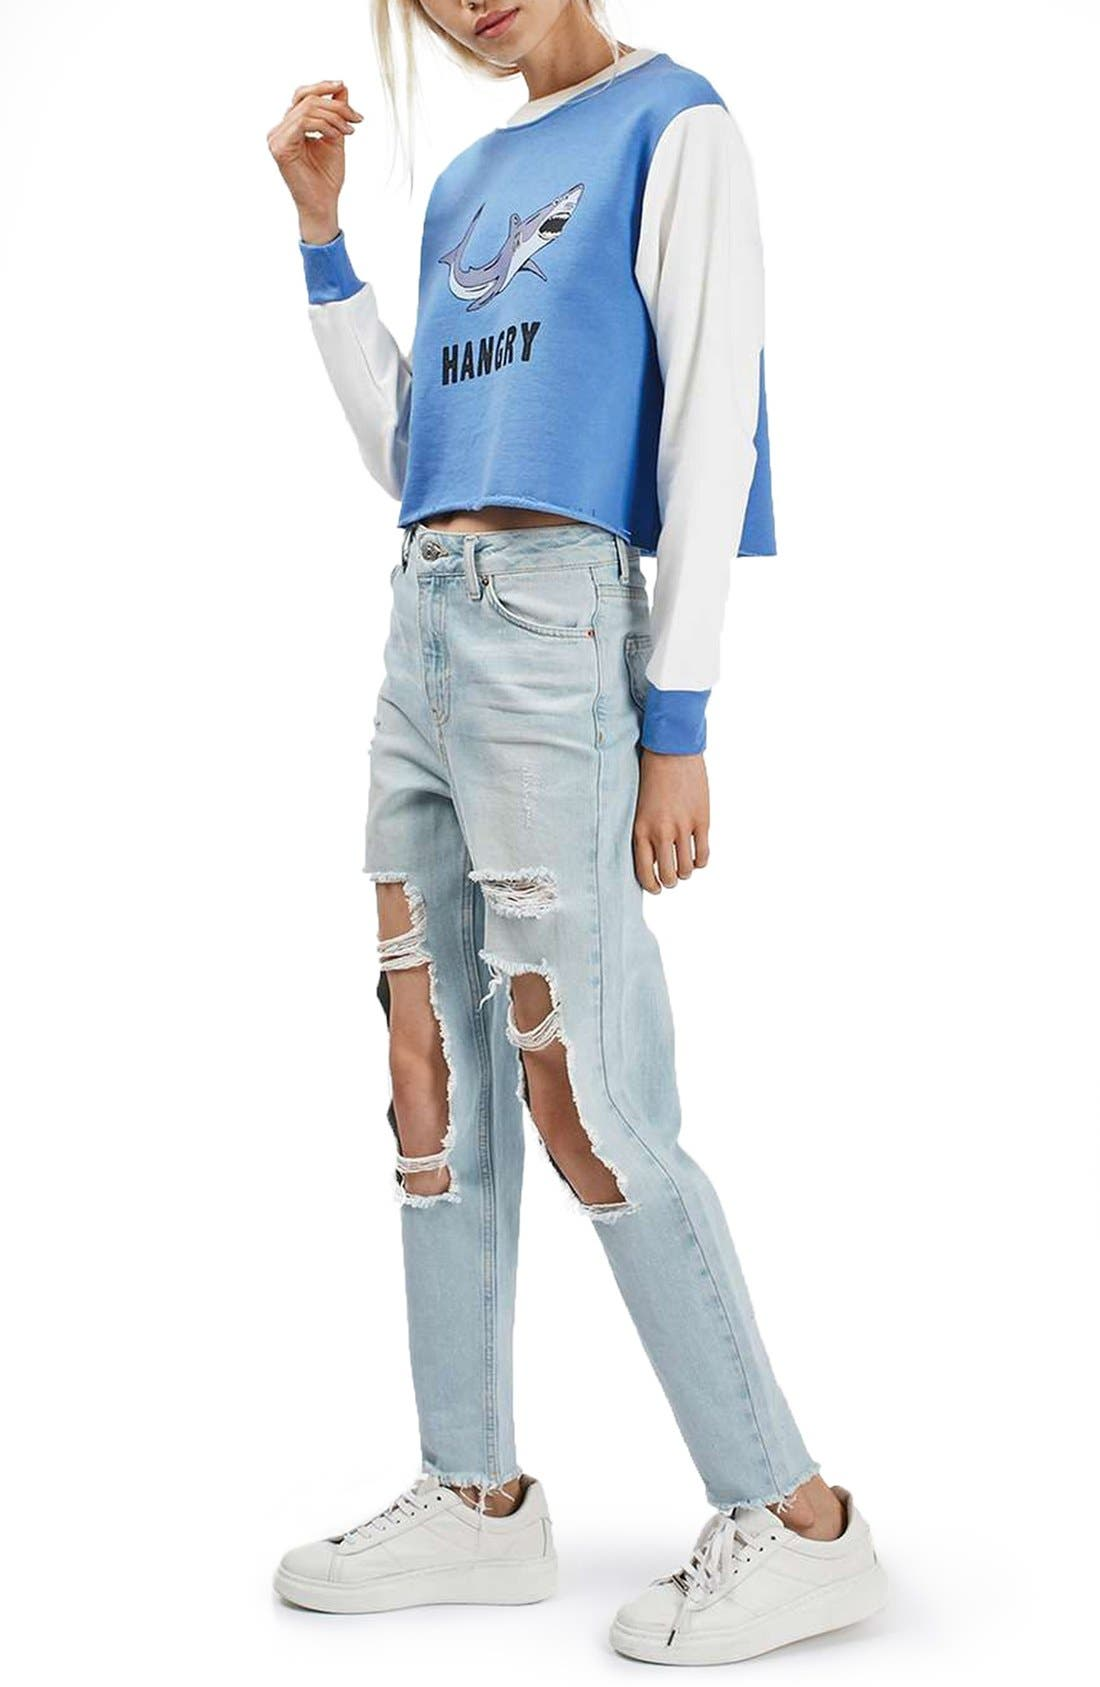 by Tee & Cake 'Hangry' Graphic Crop Colorblock Sweatshirt,                             Alternate thumbnail 2, color,                             Blue